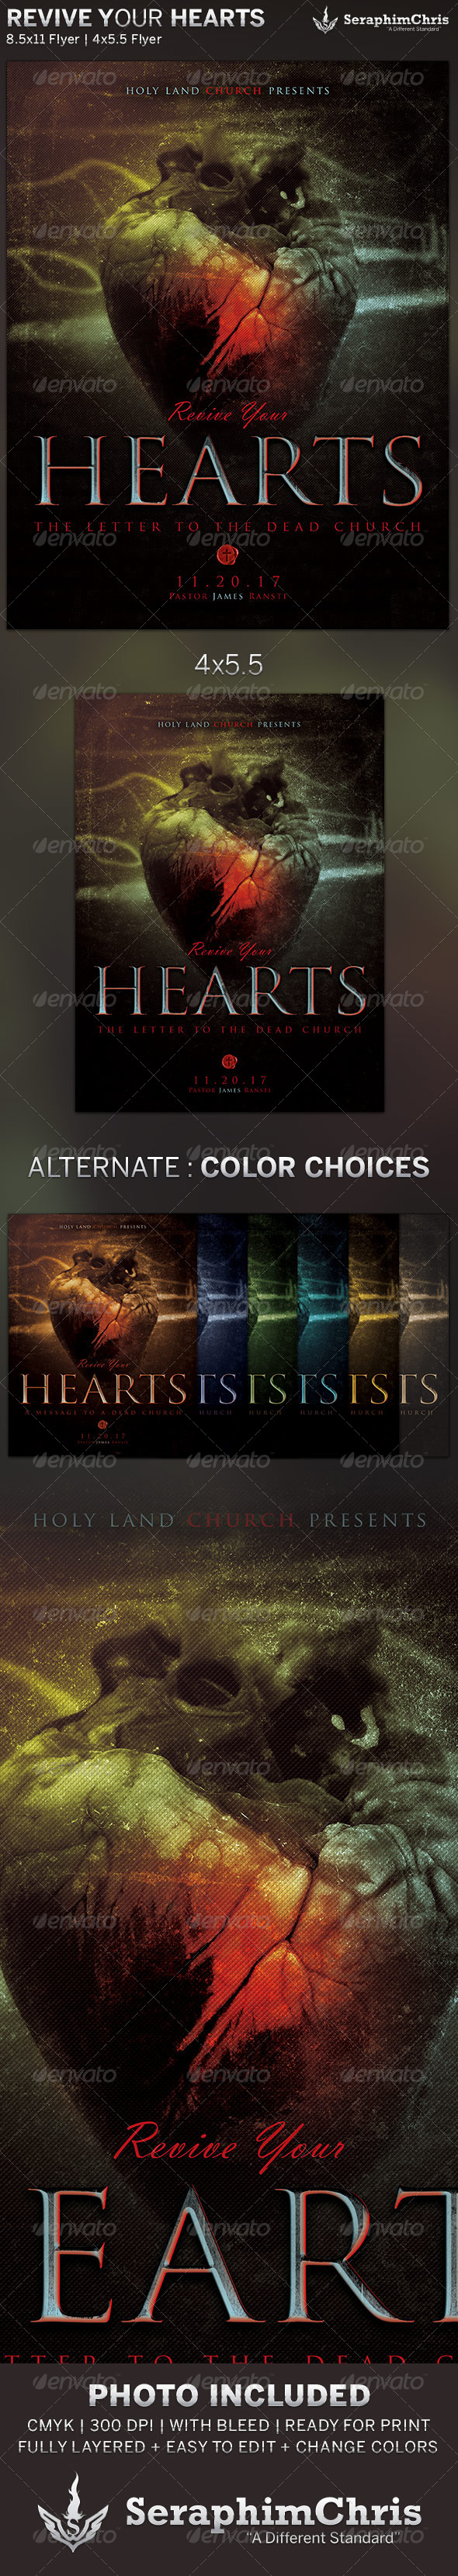 GraphicRiver Revive Your Hearts Church Flyer Template 5949659